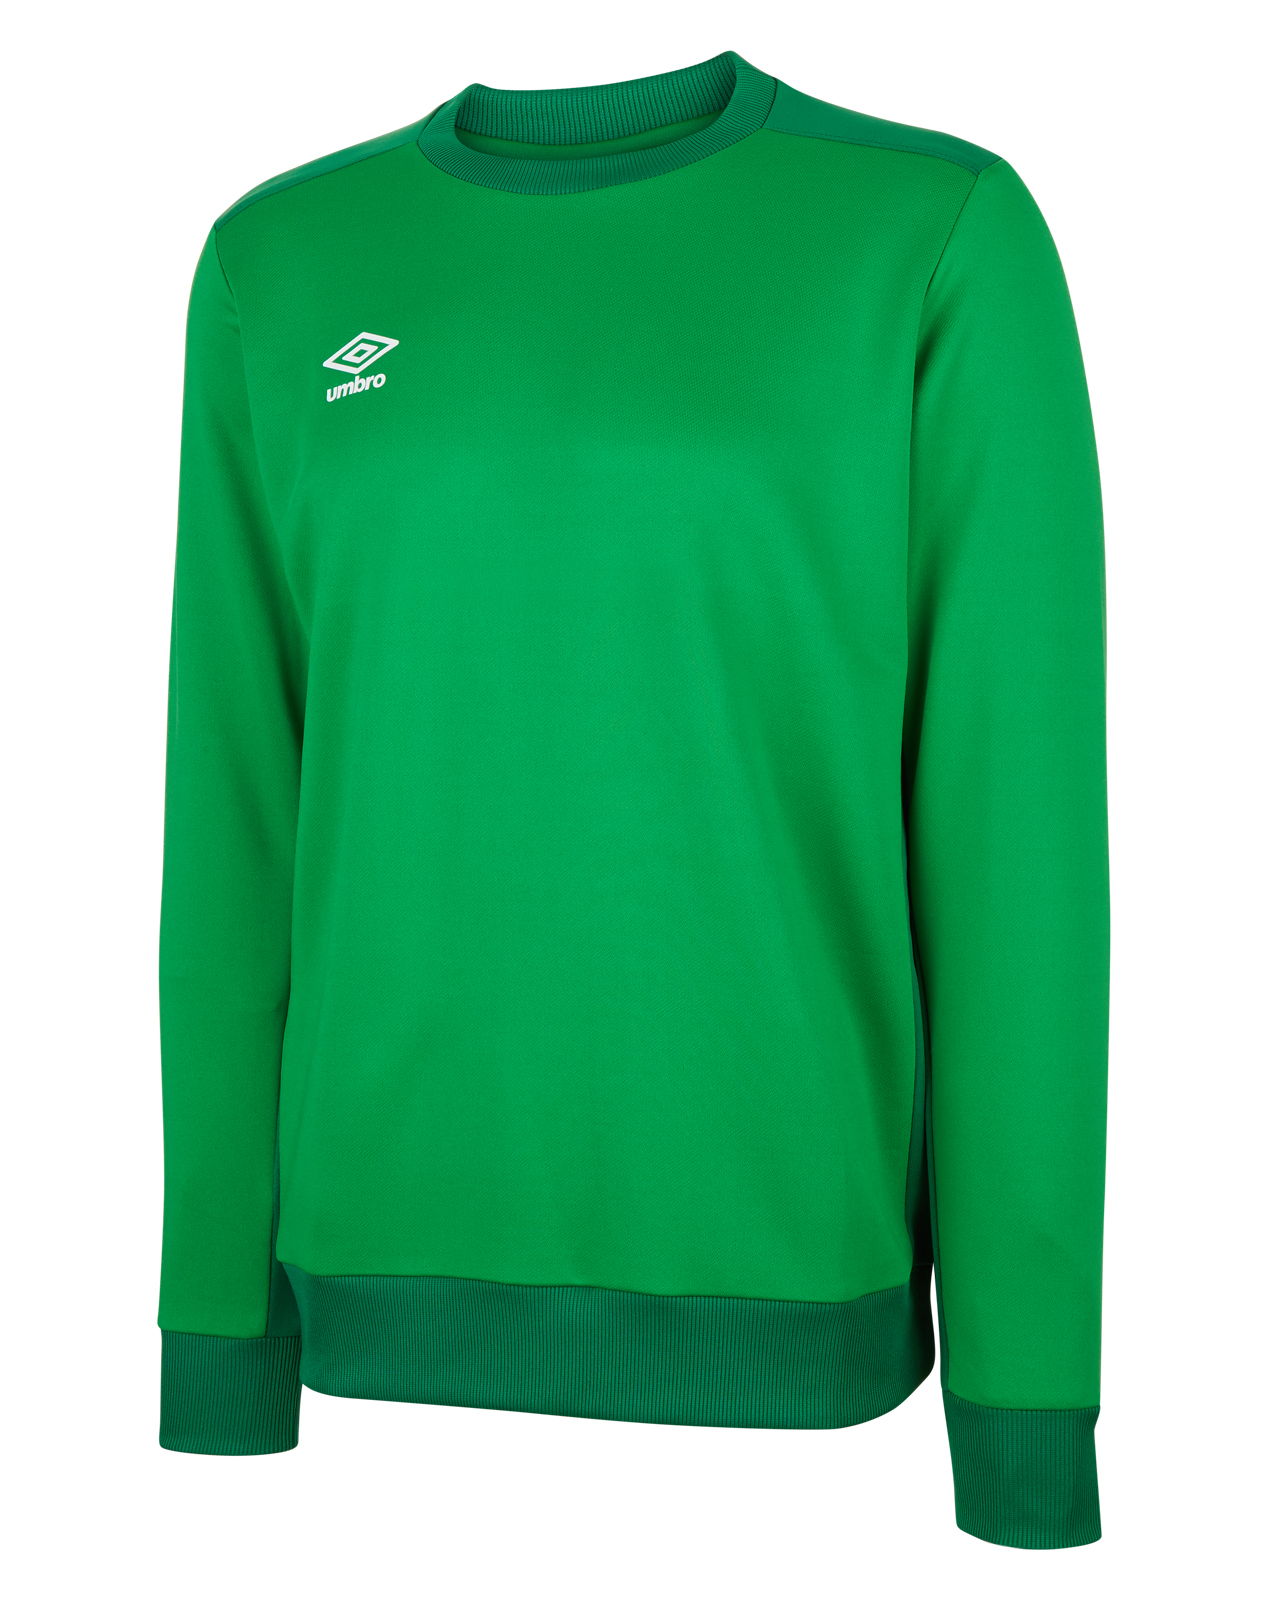 Umbro training poly sweat in emerald green with contrast darker green shoulder and side panels